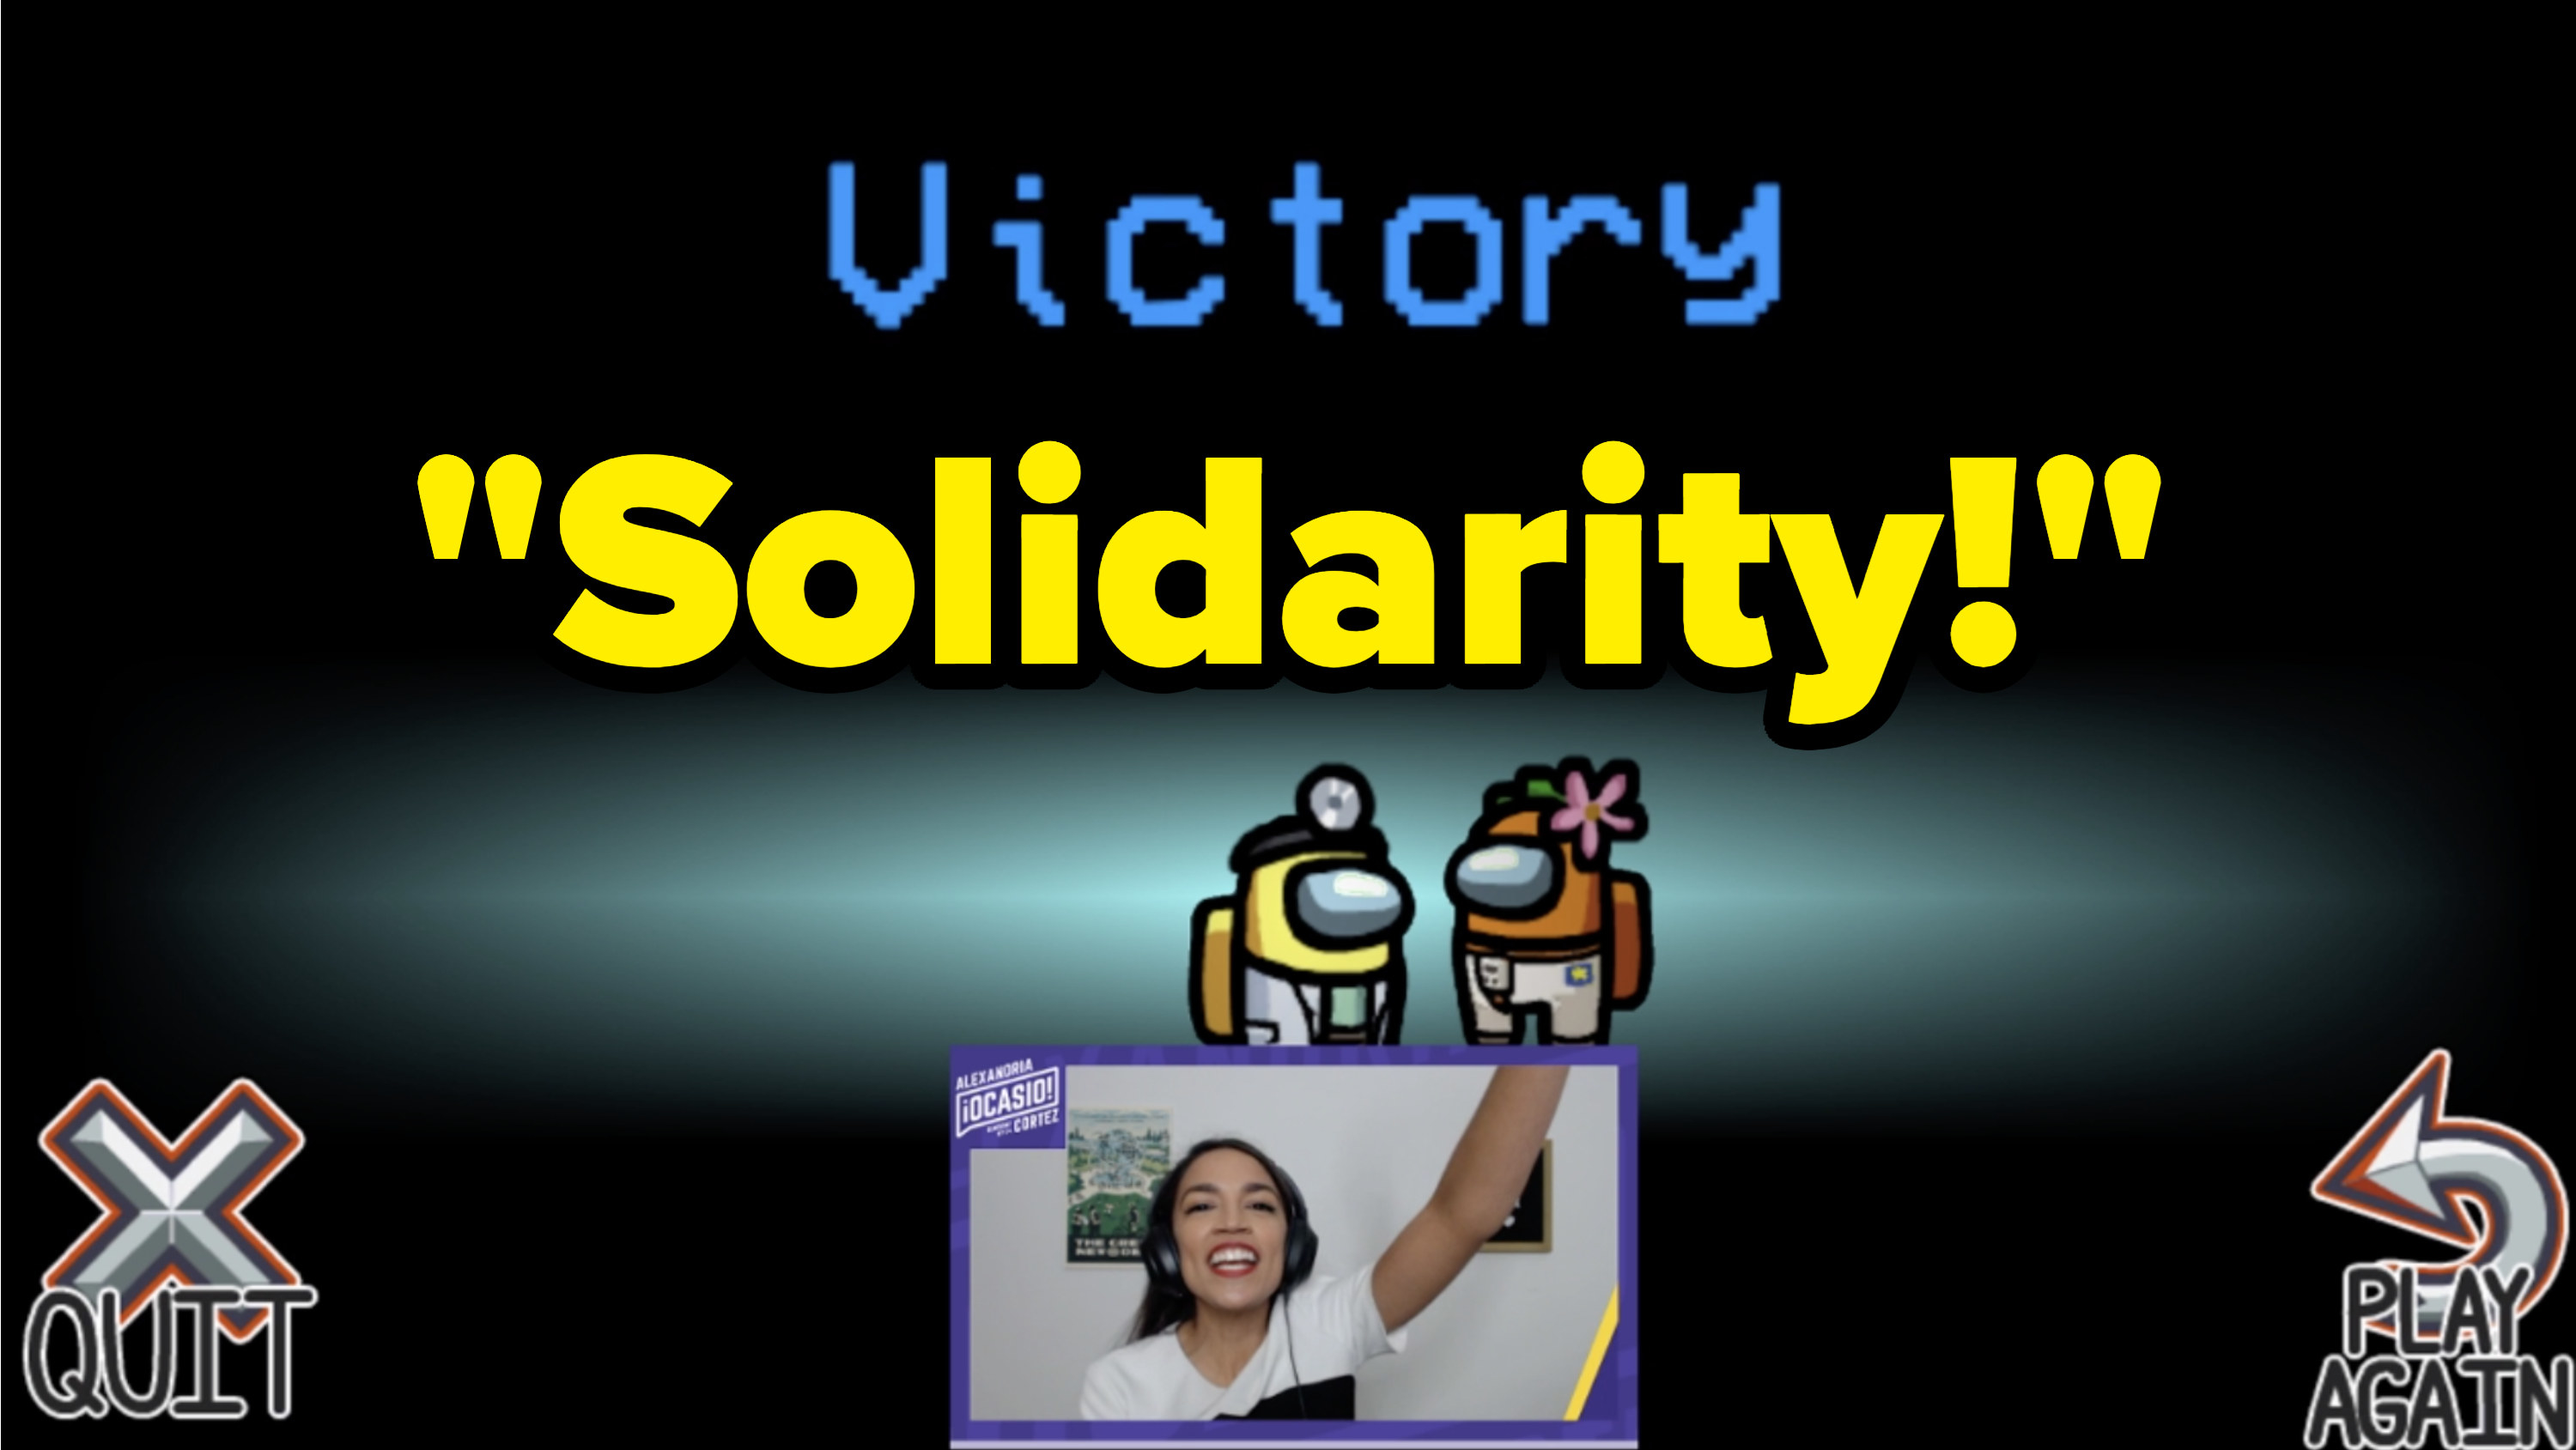 AOC says Solidarity! after winning